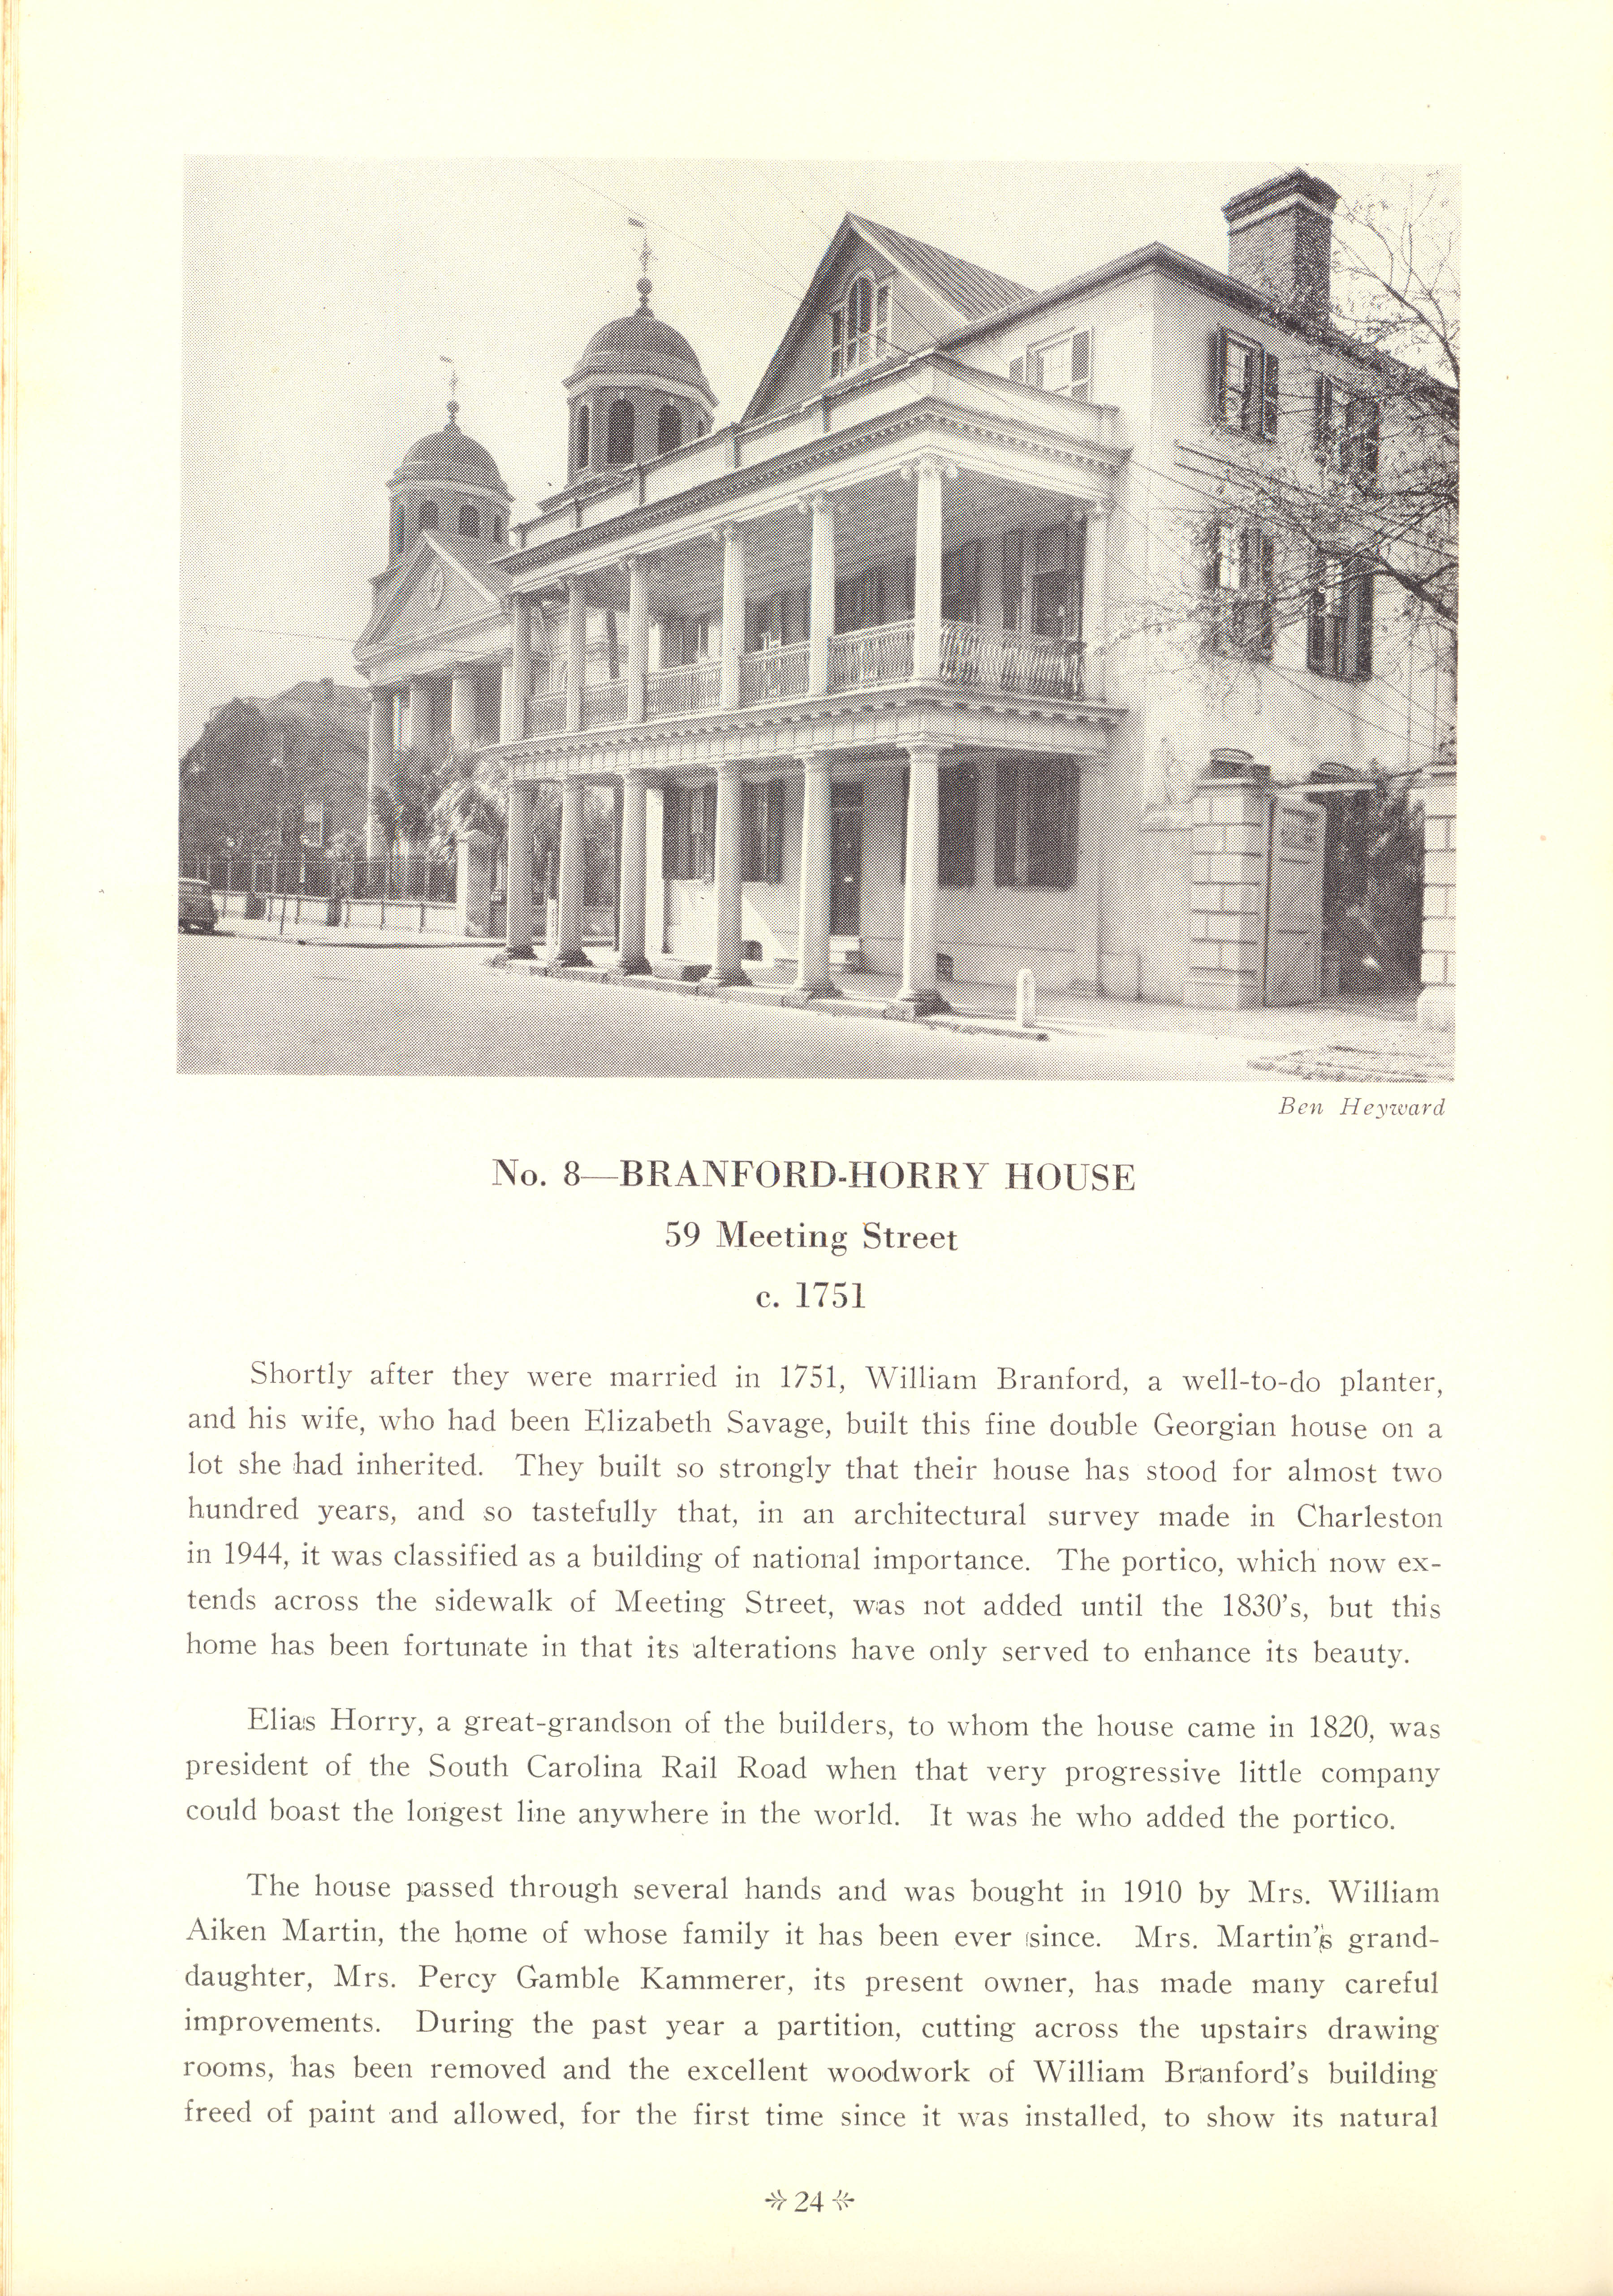 Page 24:  No. 8 - Branford-Horry House, 59 Meeting Street, c. 1751